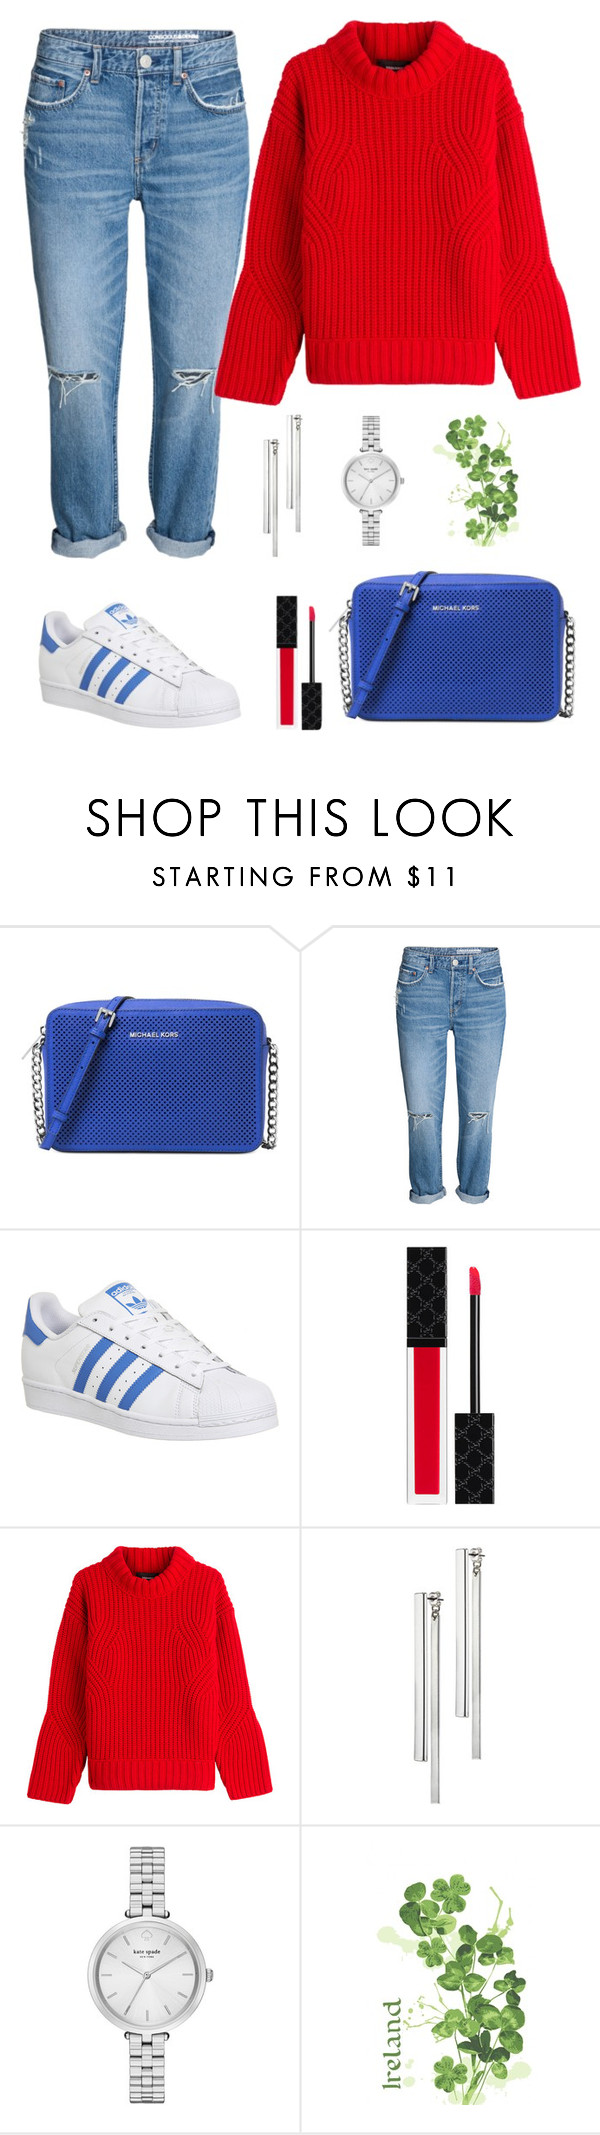 """""""Popular."""" by schenonek ❤ liked on Polyvore featuring Michael Kors, adidas, Gucci, Dsquared2, Kain, Kate Spade and Ulster Weavers"""